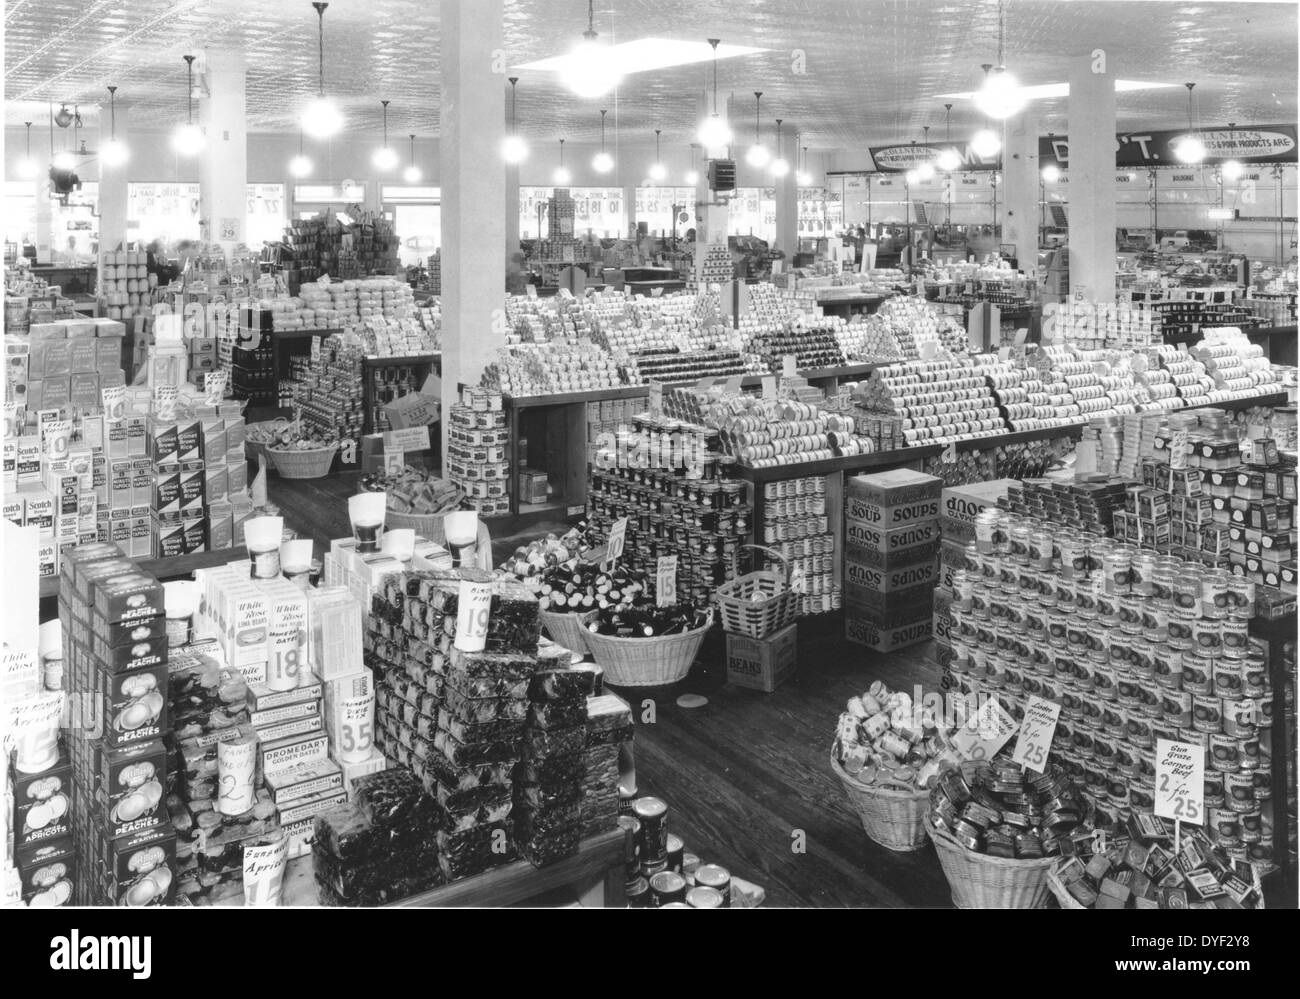 Photograph of a well stocked shop in the USA 1920s. - Stock Image